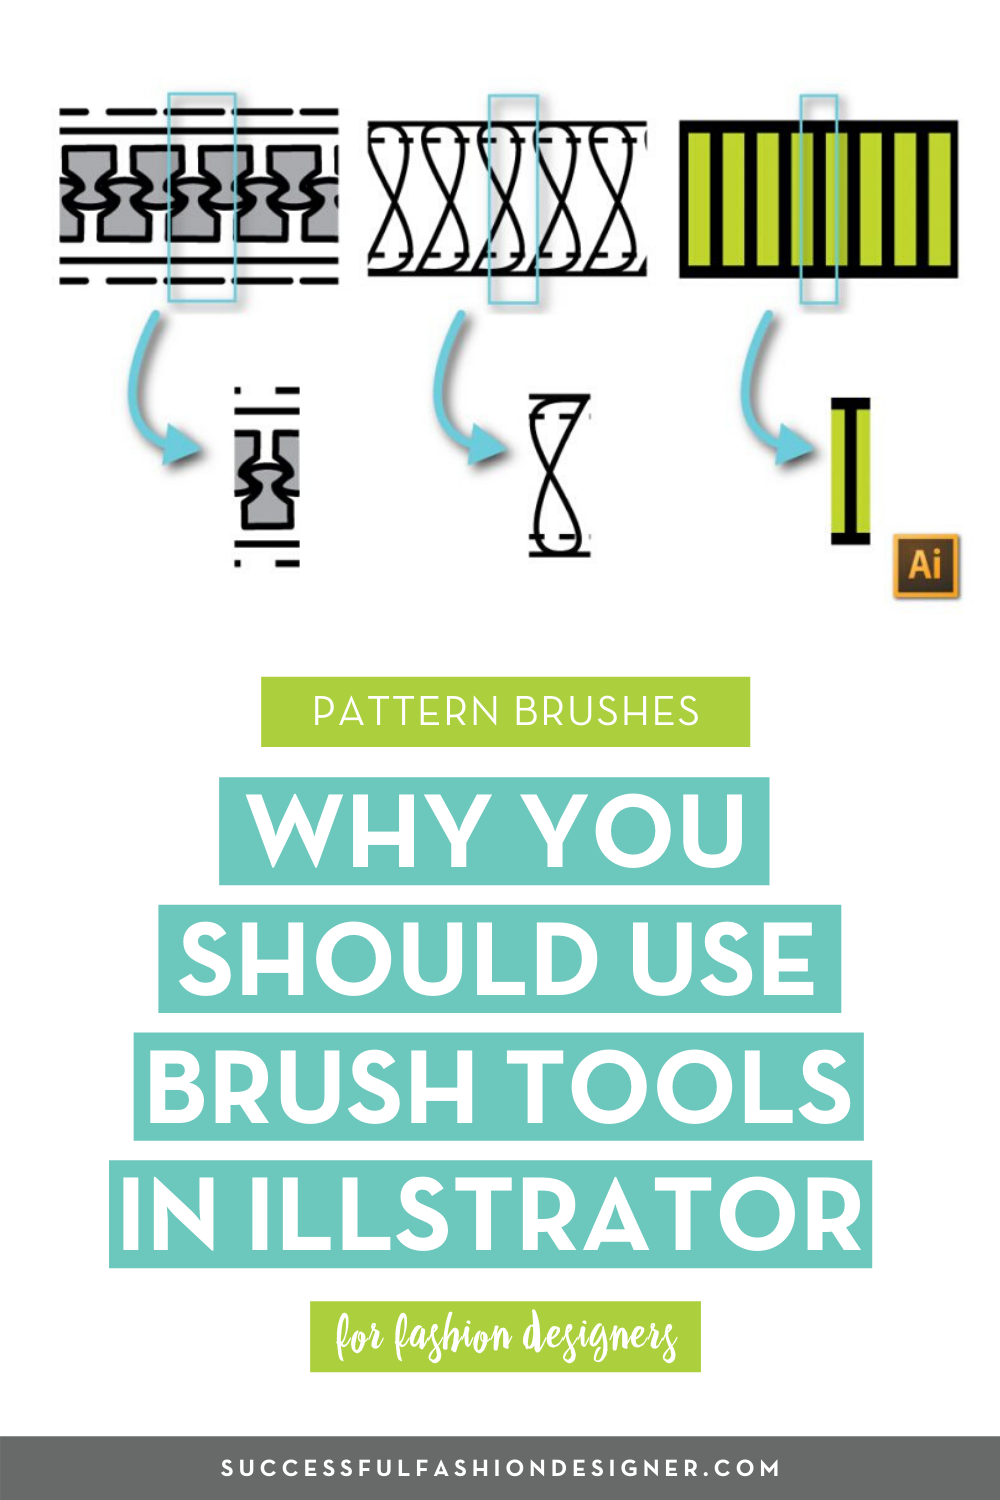 Why Should I Use Brushes In Illustrator Courses Free Tutorials On Adobe Illustrator Tech Packs Freelancing For Fashion Designers Fashion Design Portfolio Illustration Fashion Design Fashion Design Jobs